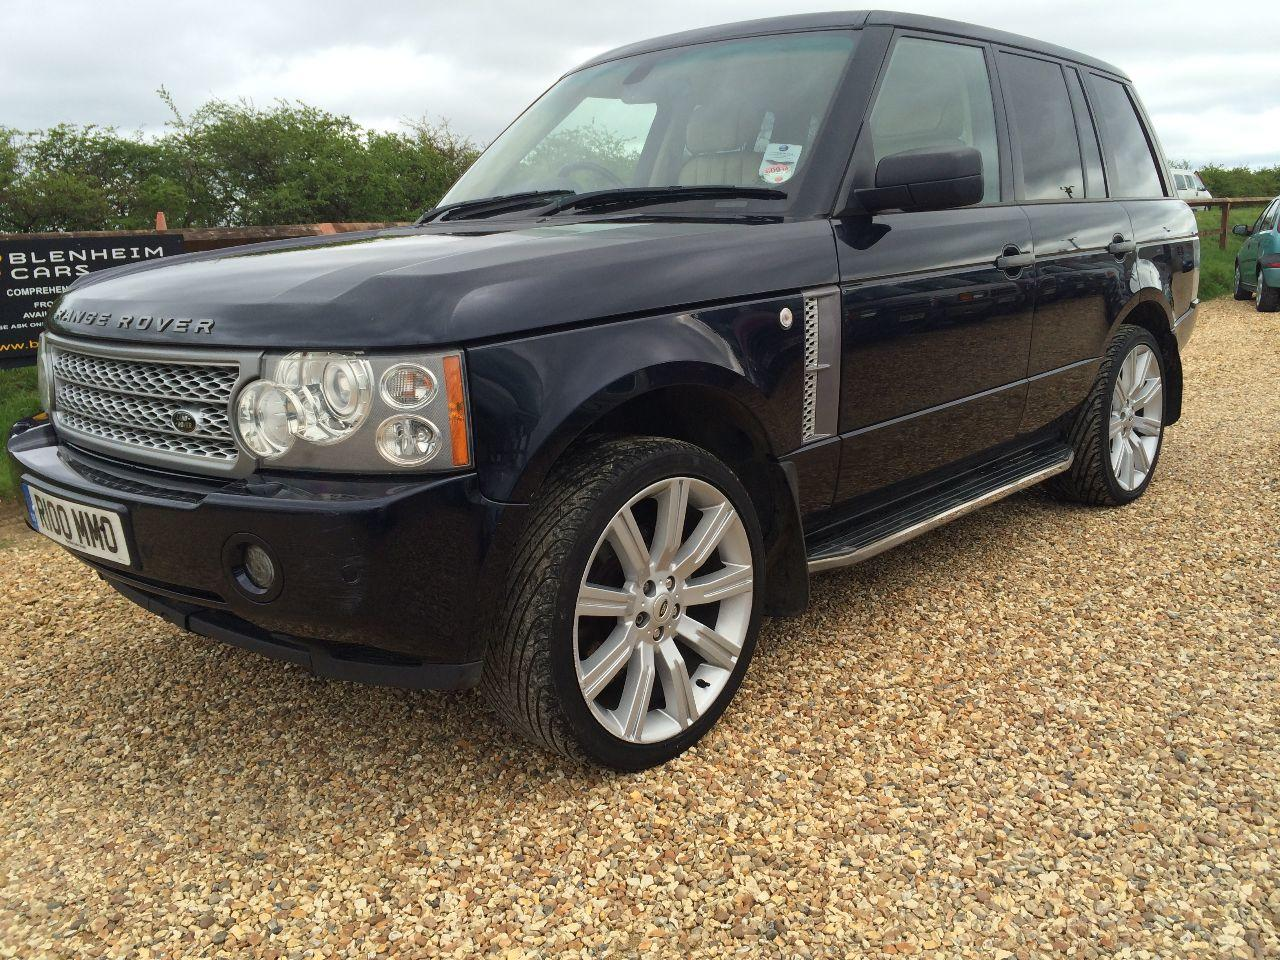 Land Rover Range Rover 3.0 Td6 VOGUE AUTO FULL SERVICE HISTORY FACE LIFT MODEL Four Wheel Drive Diesel Blue